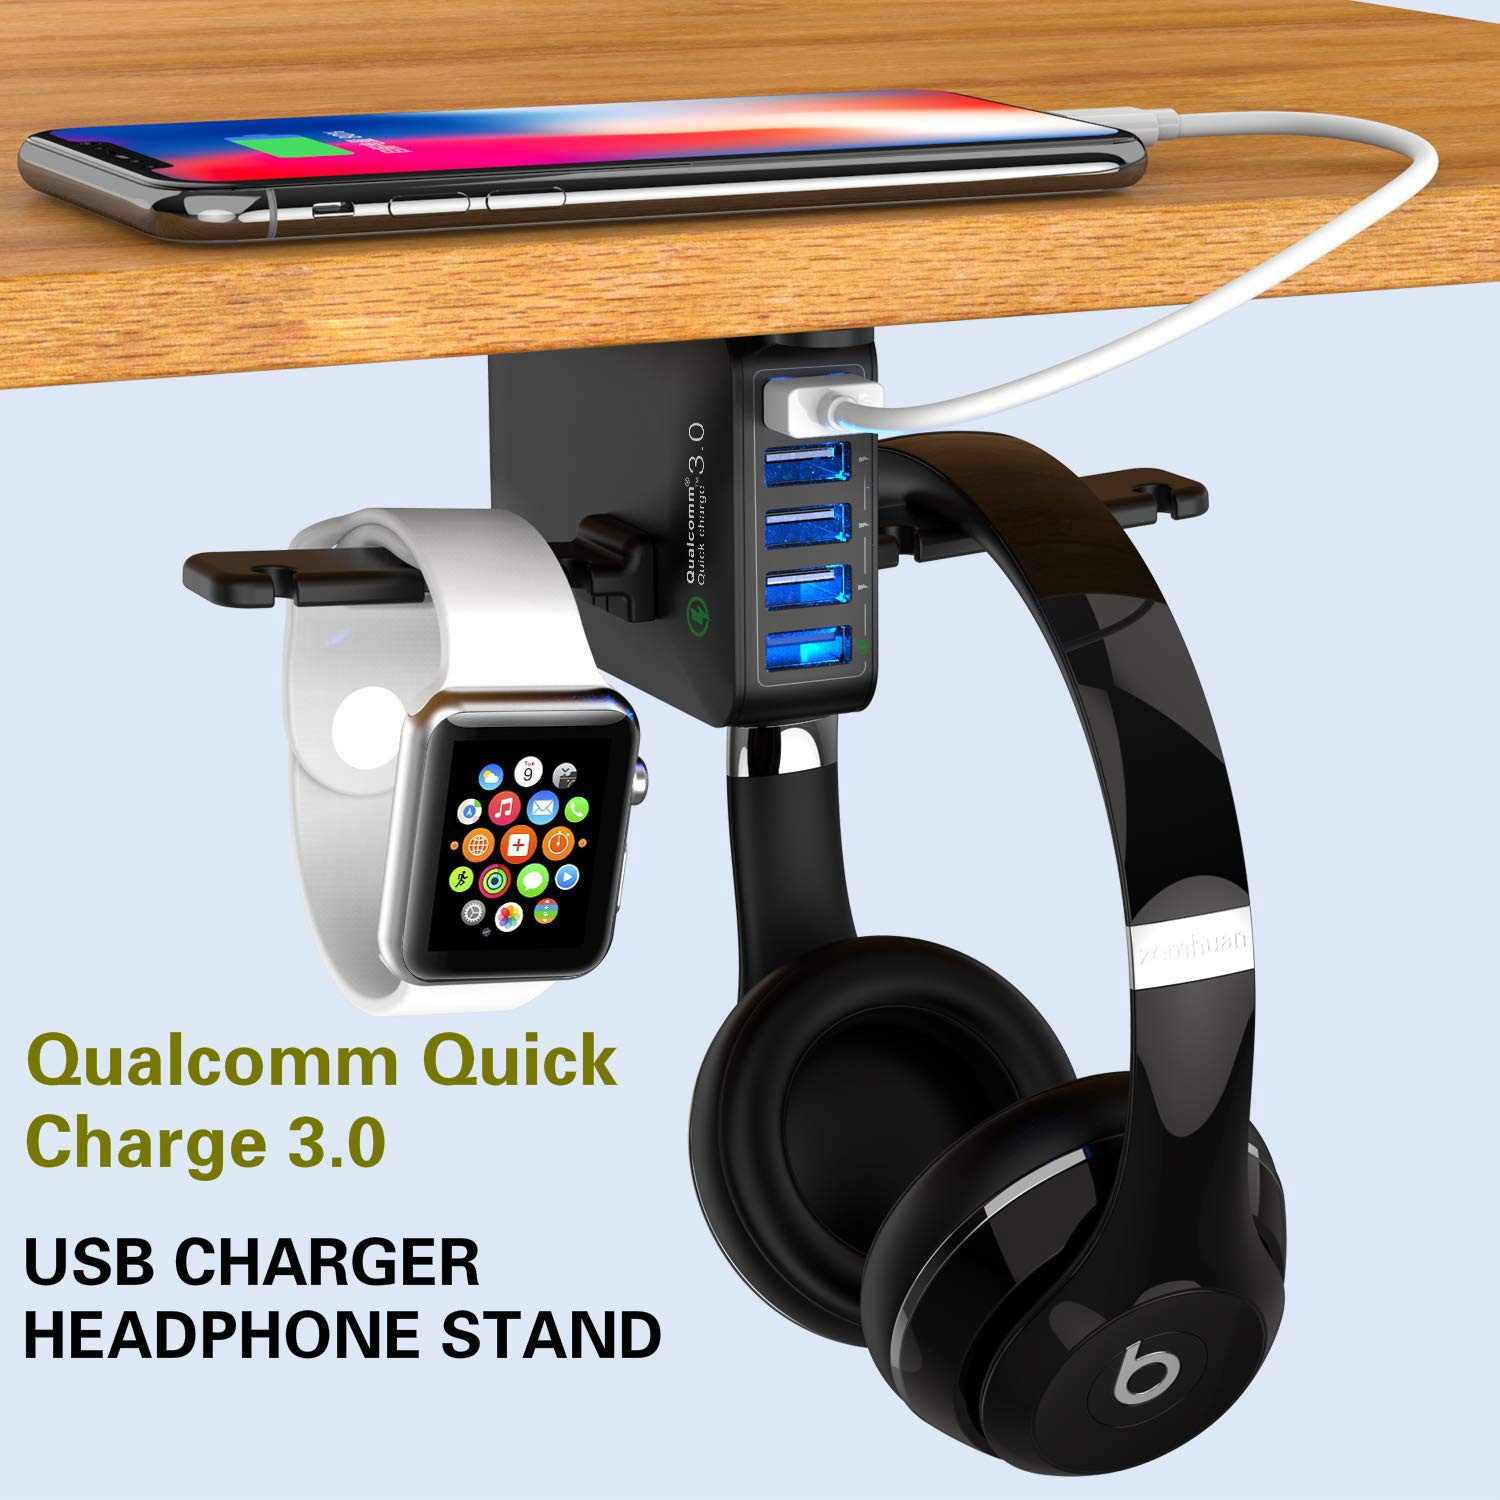 Yostyle Headphone Stand with USB Charger, Under Desk Headset Hook Holder Hanger Mount with 5 USB Port Quick Charging Station(8A/40W) and Cable Organizer for PC Gaming Headsets Accessories,UL Tested